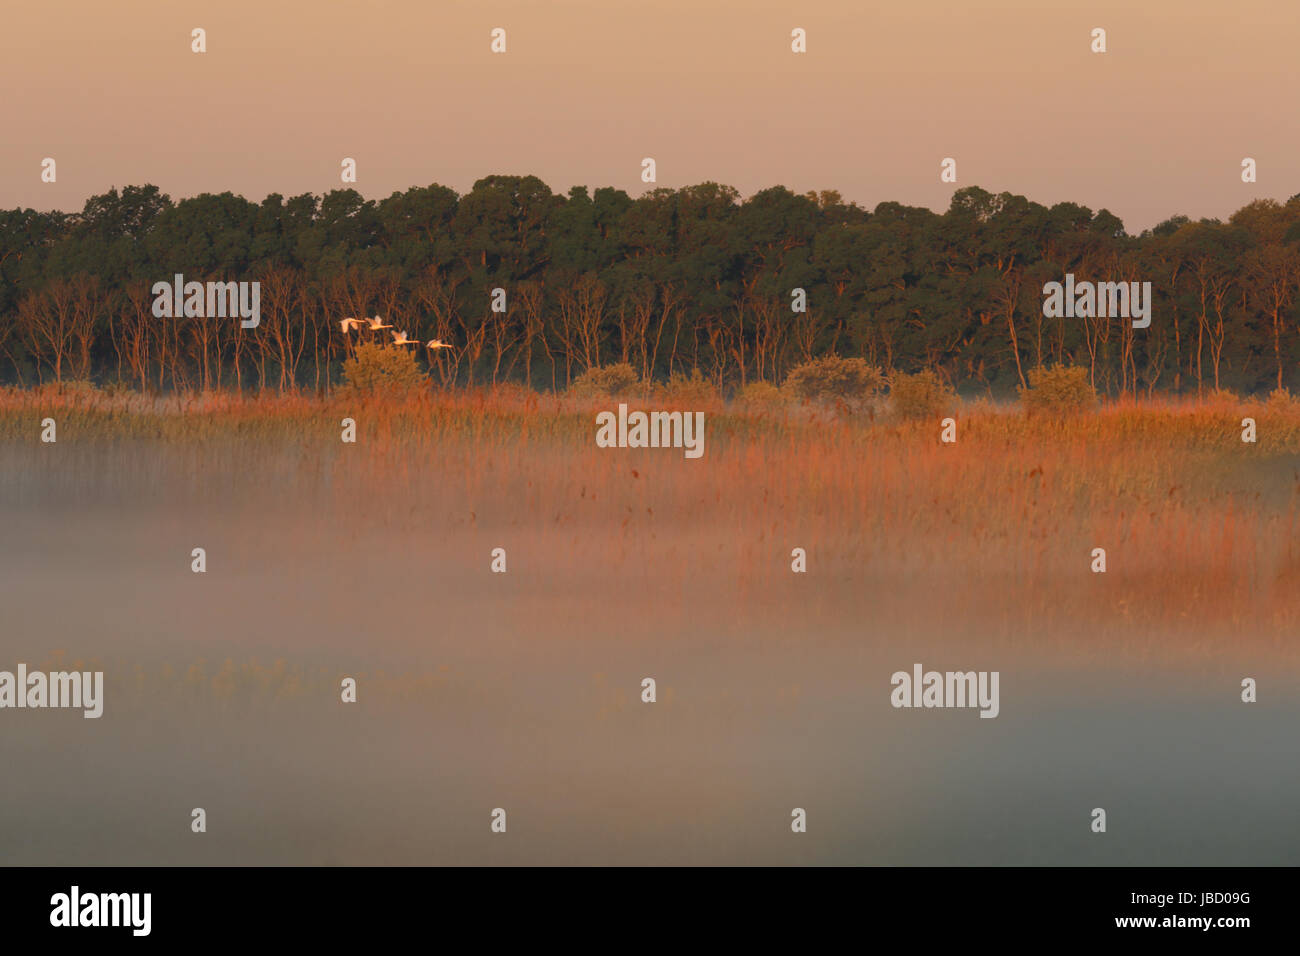 sunrise-in-the-danube-river-delta-in-rom